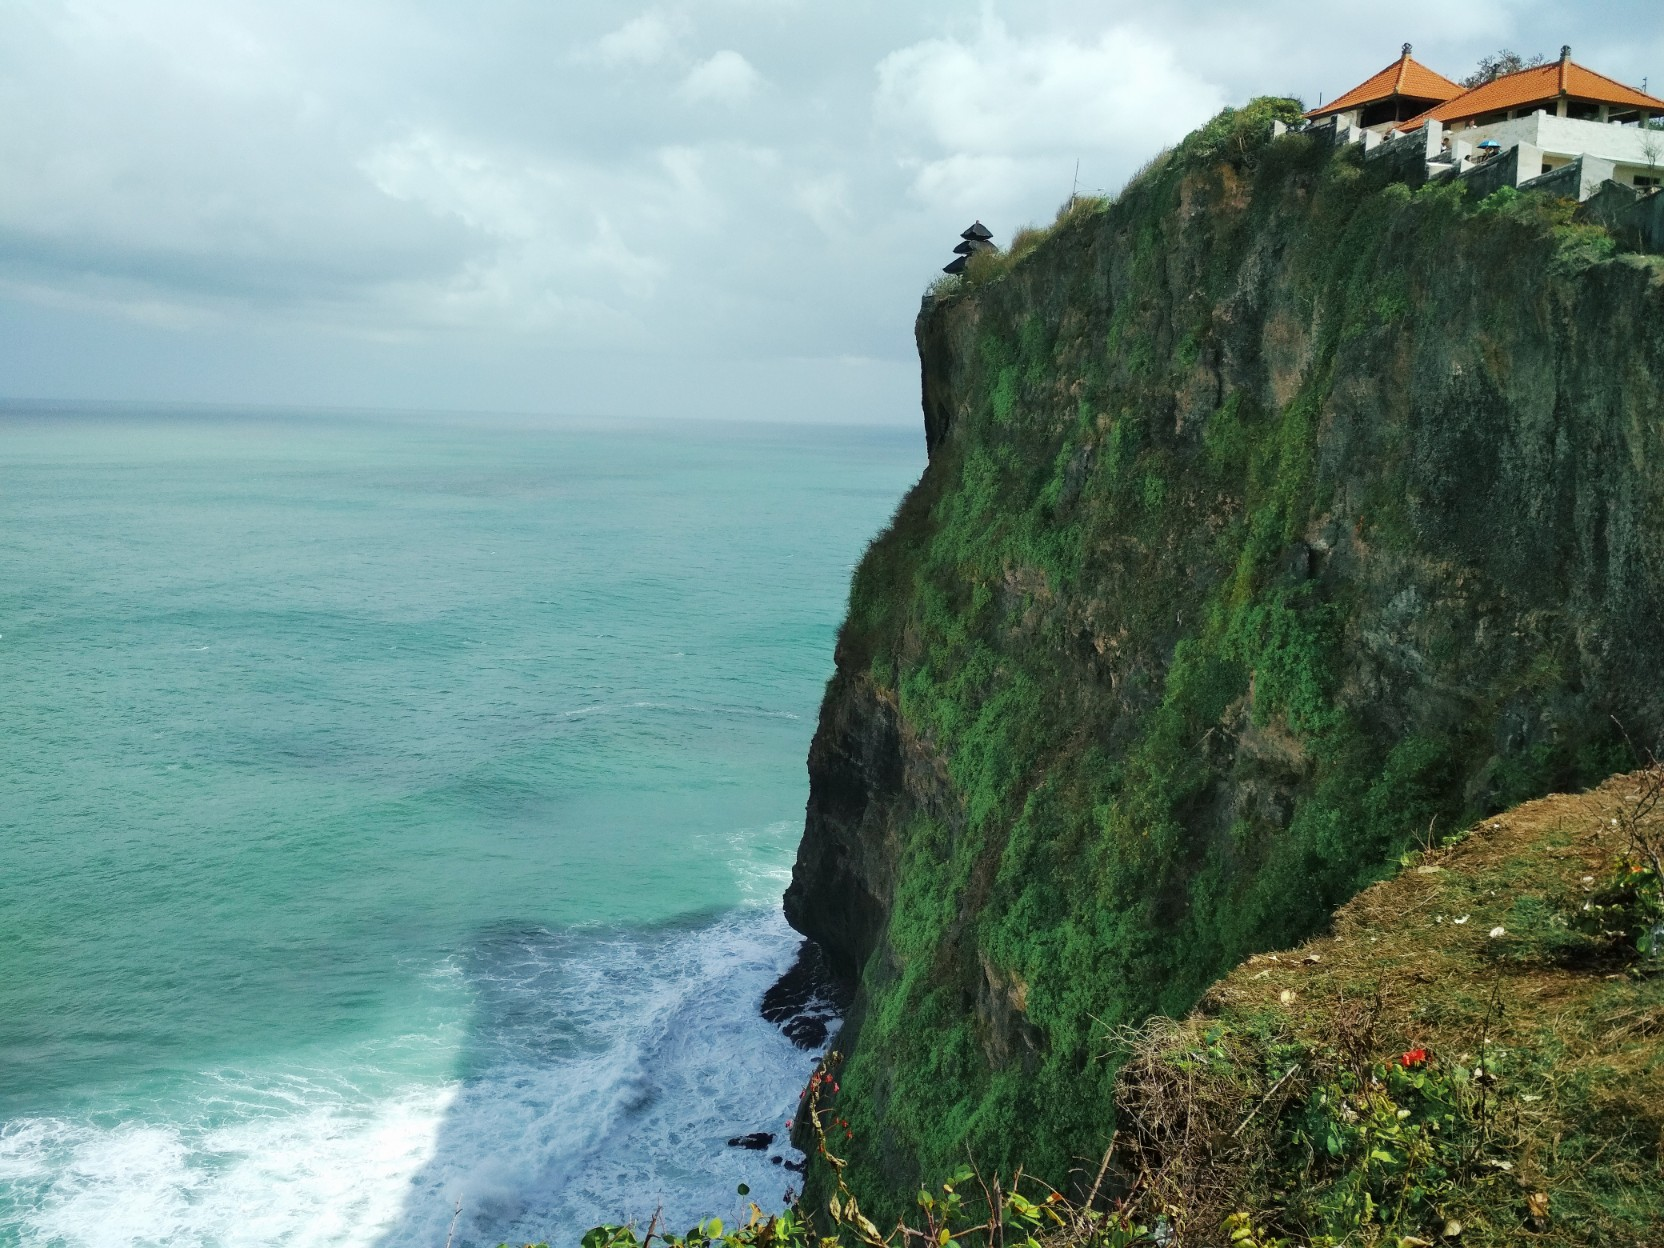 Tempio di Uluwatu, BALI (Photo by Gabriele Ferrando)